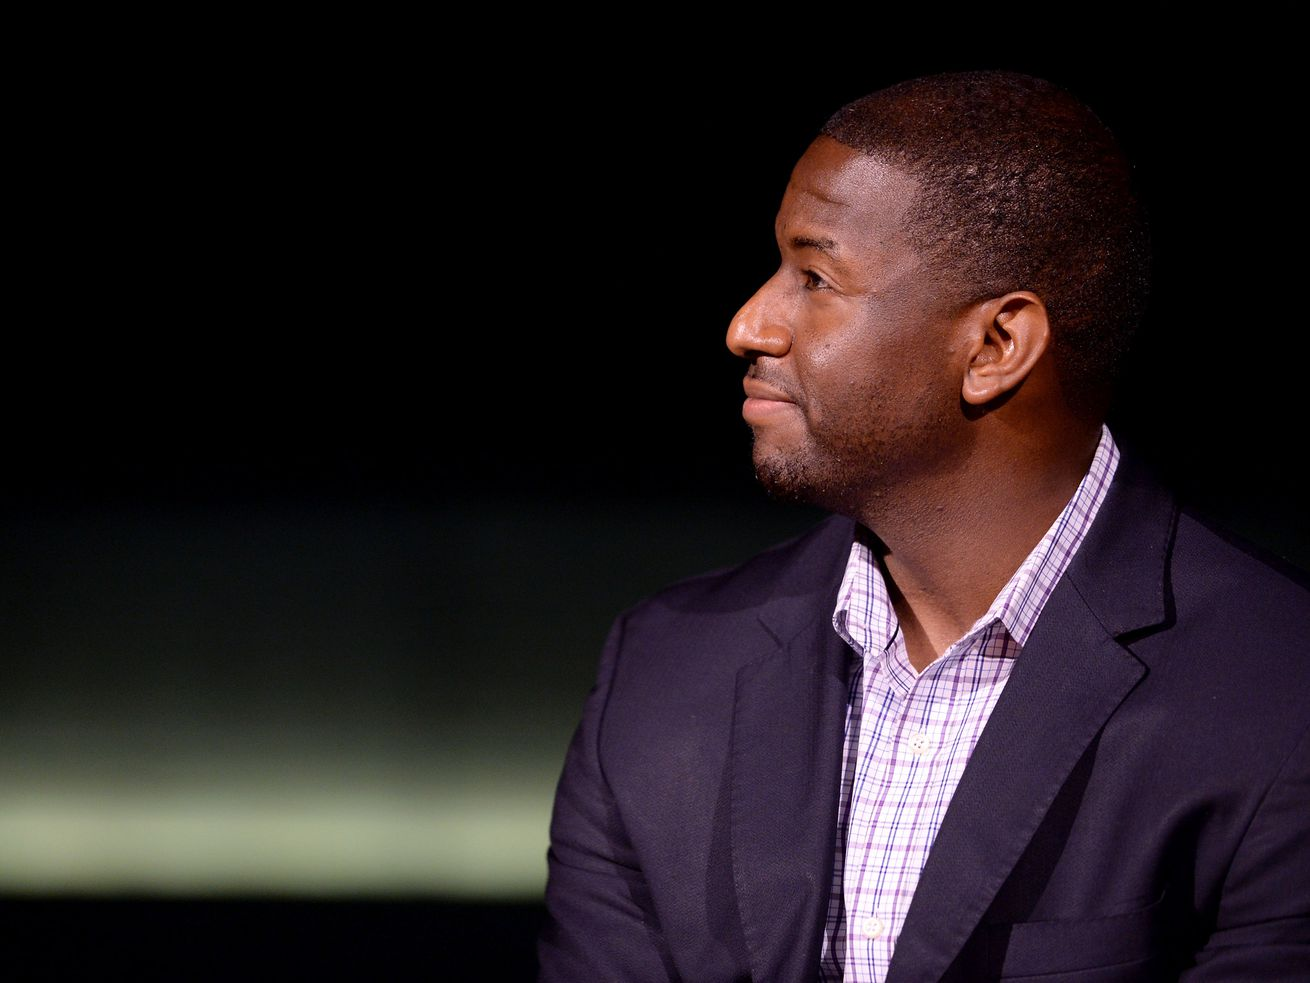 Tallahassee Mayor Andrew Gillum at a get-out-the-vote event on March 10, 2016, in Santa Monica, California.